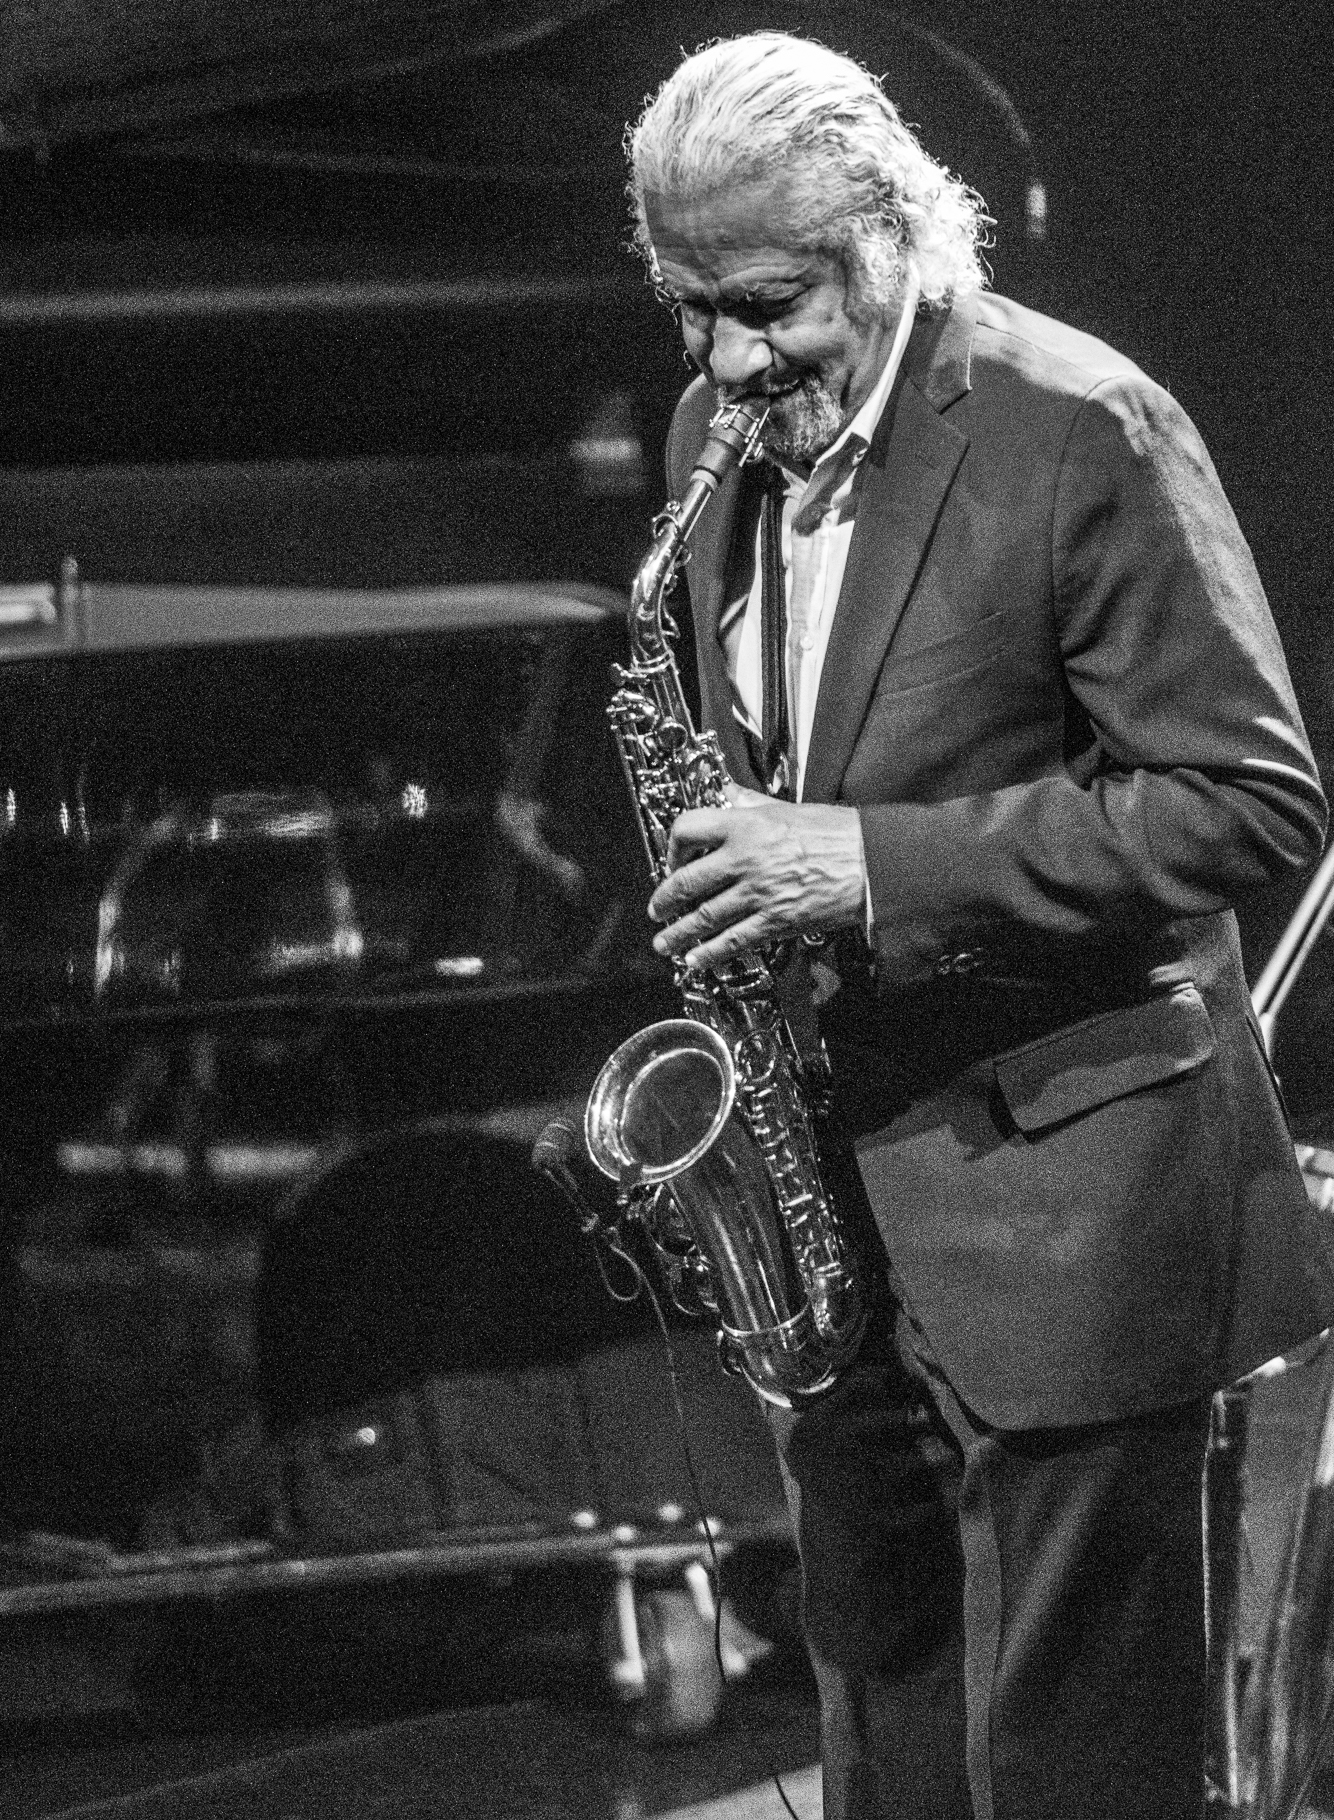 Gary Bartz with Heads of State at the Montreal International Jazz Festival 2015